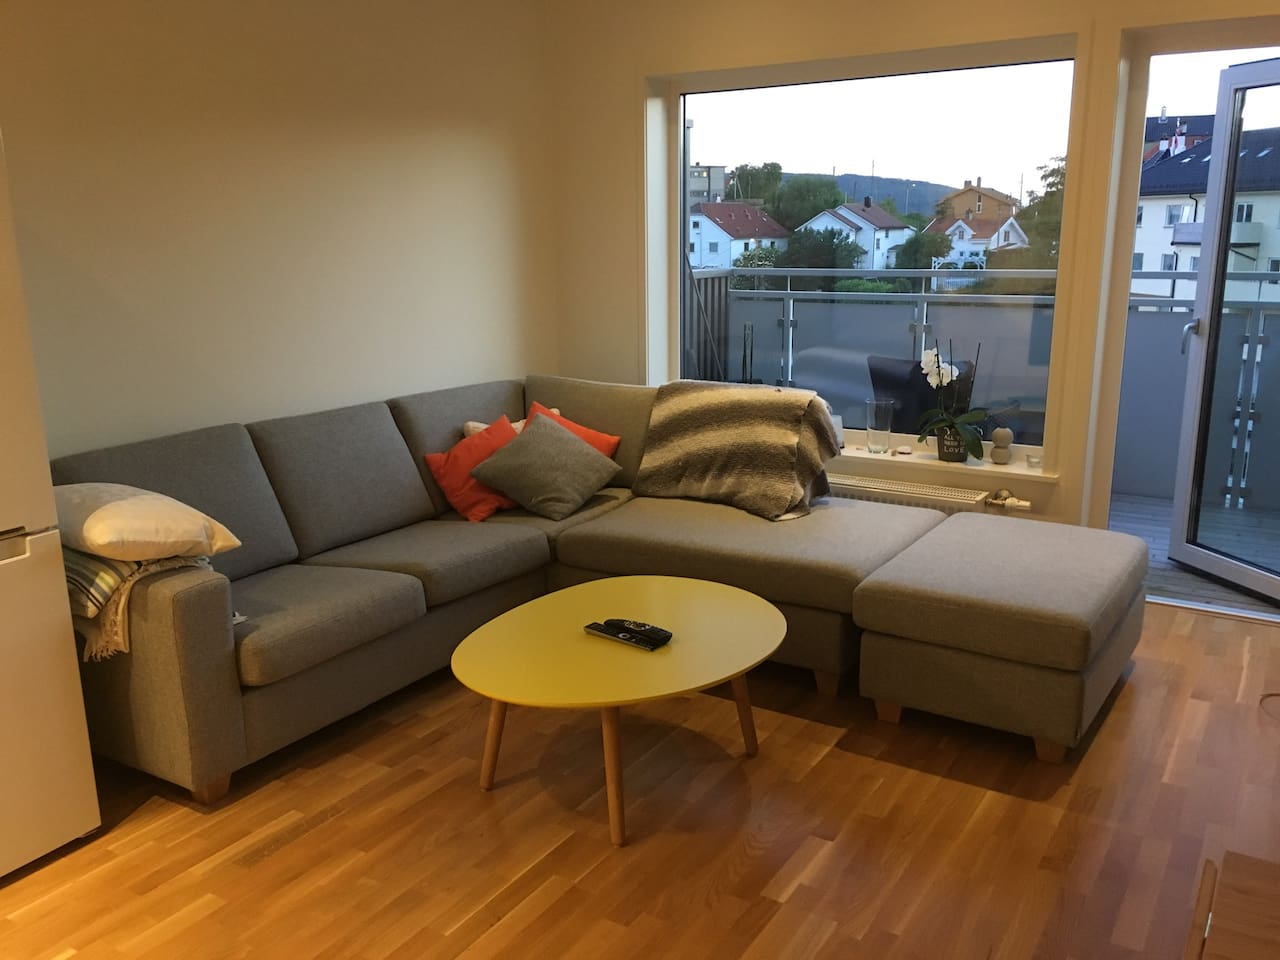 Living Room, the sofa can be used for one guest